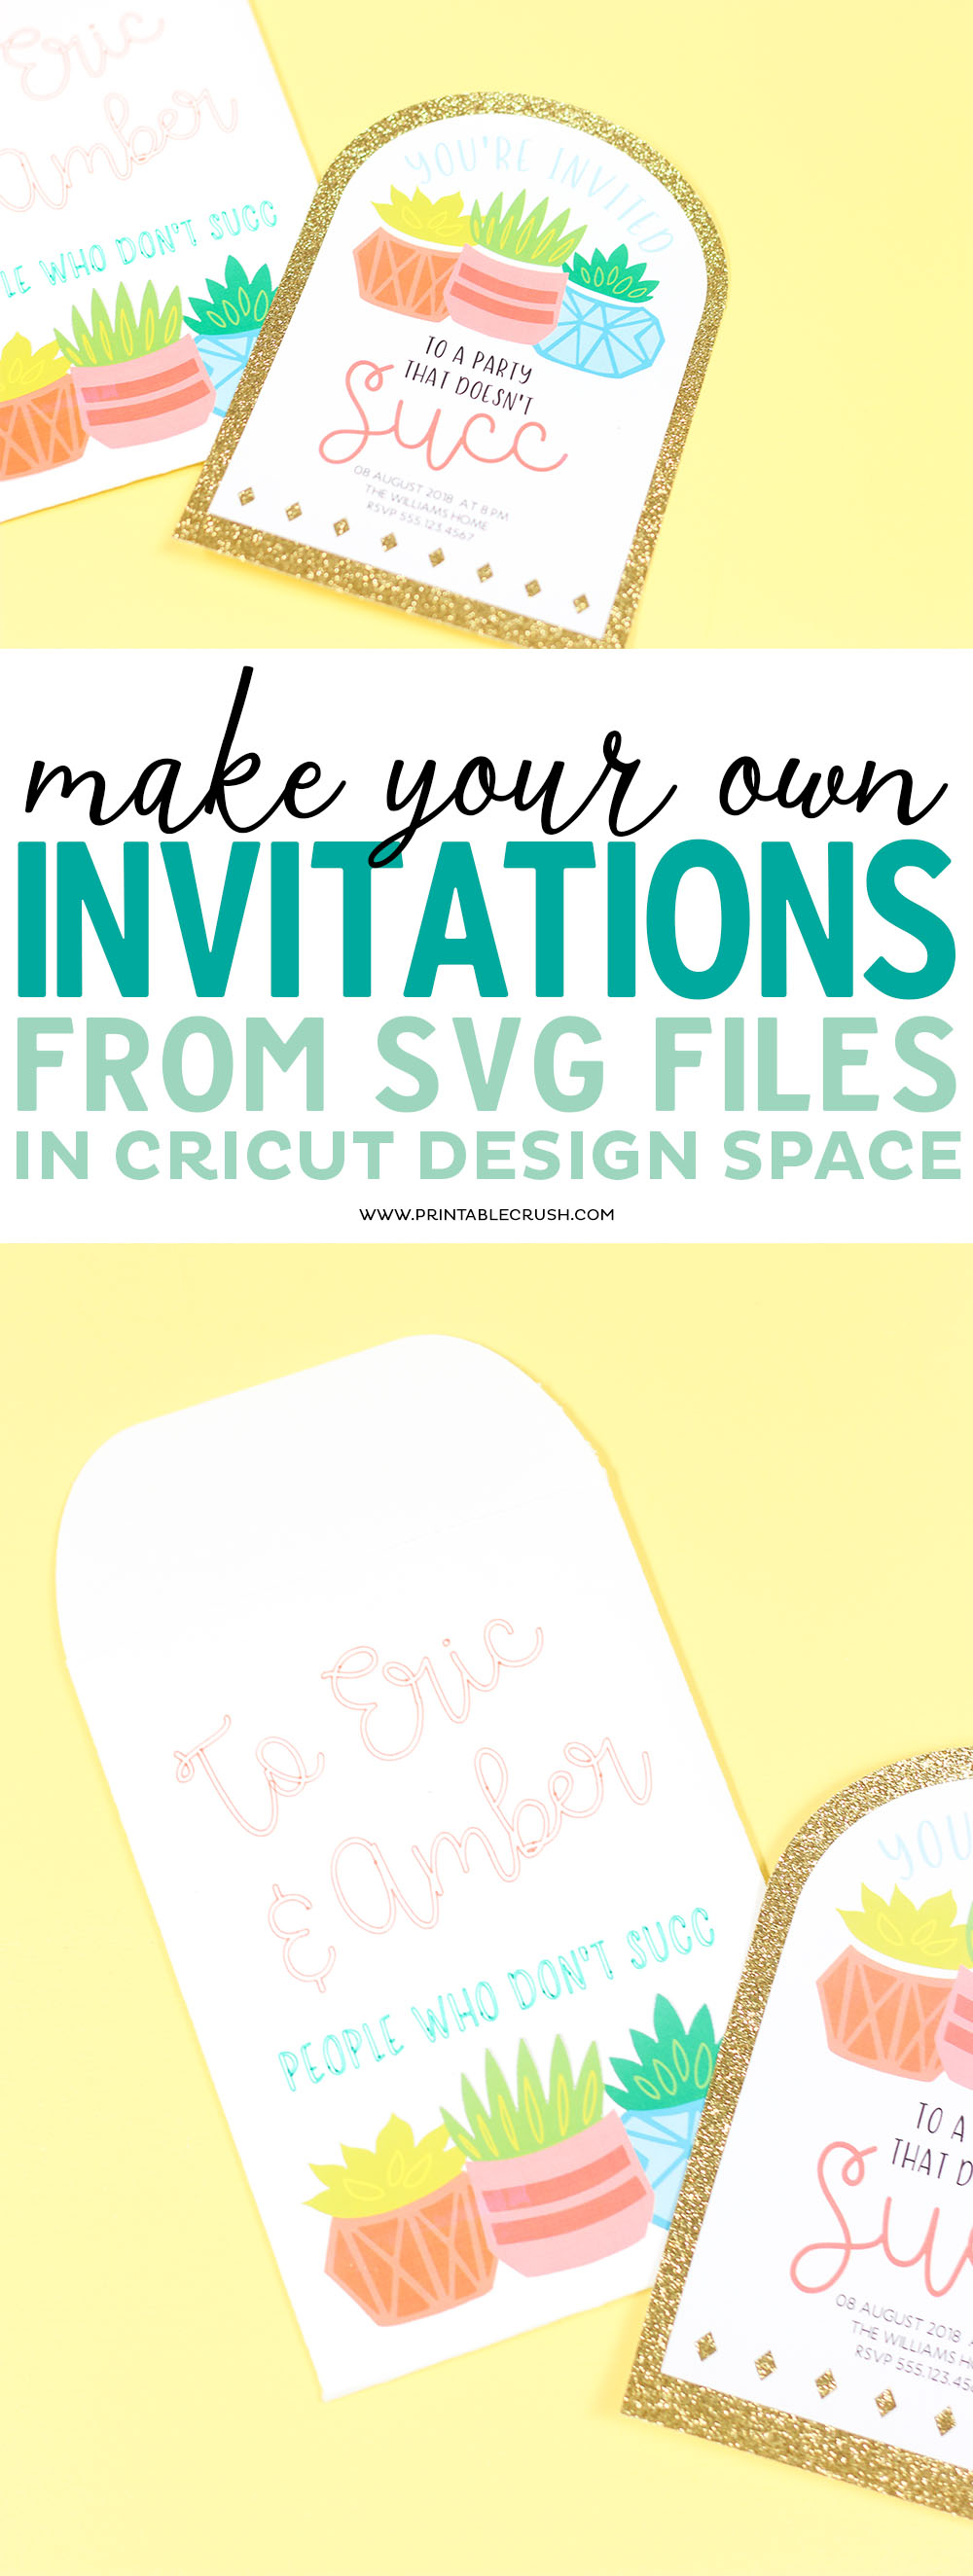 make your own invitations from svg files in cricut design space